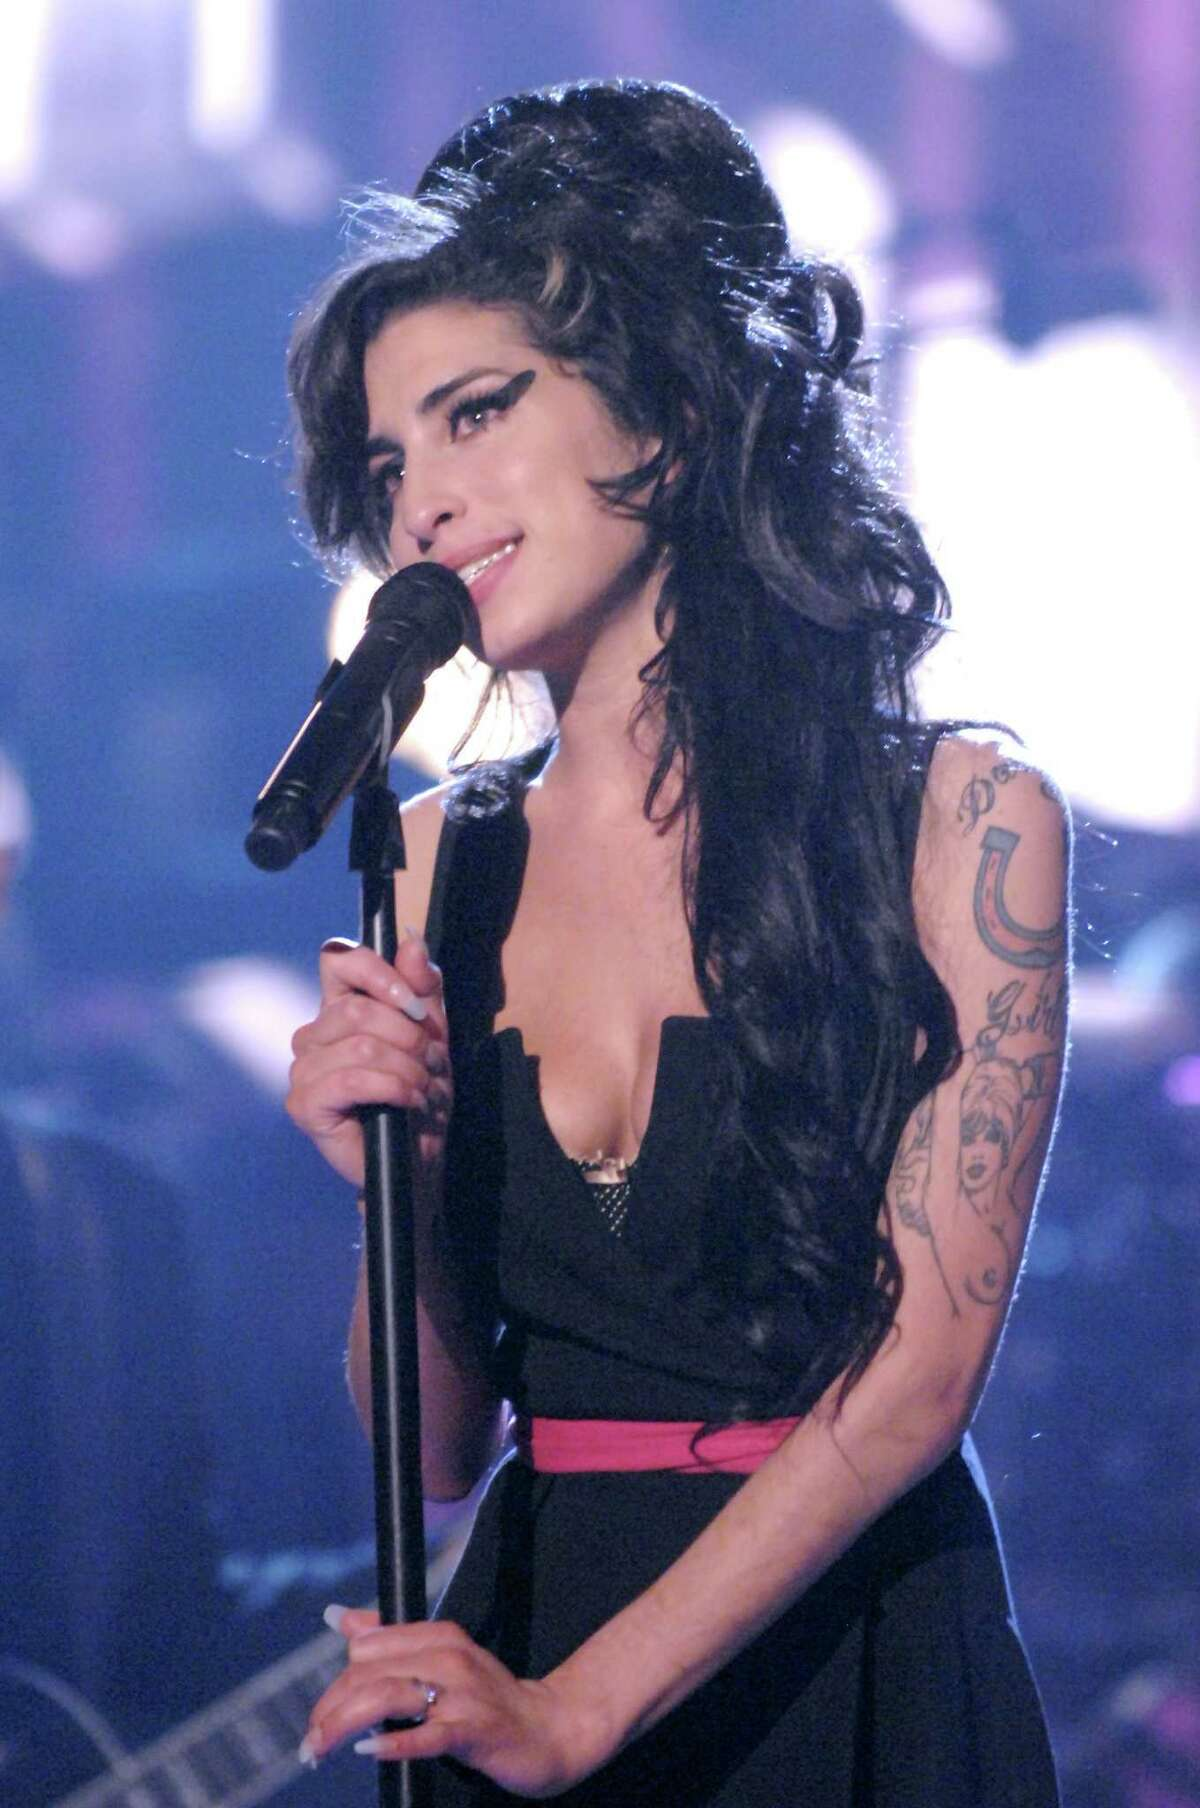 Amy: Four-and-a-half stars Asif Kapadia's documentary looks at the short career and tragic death of musician Amy Winehouse. Read the review: 'Amy' is the story of a shooting star More: An interview with the filmmaker behind the haunting documentary